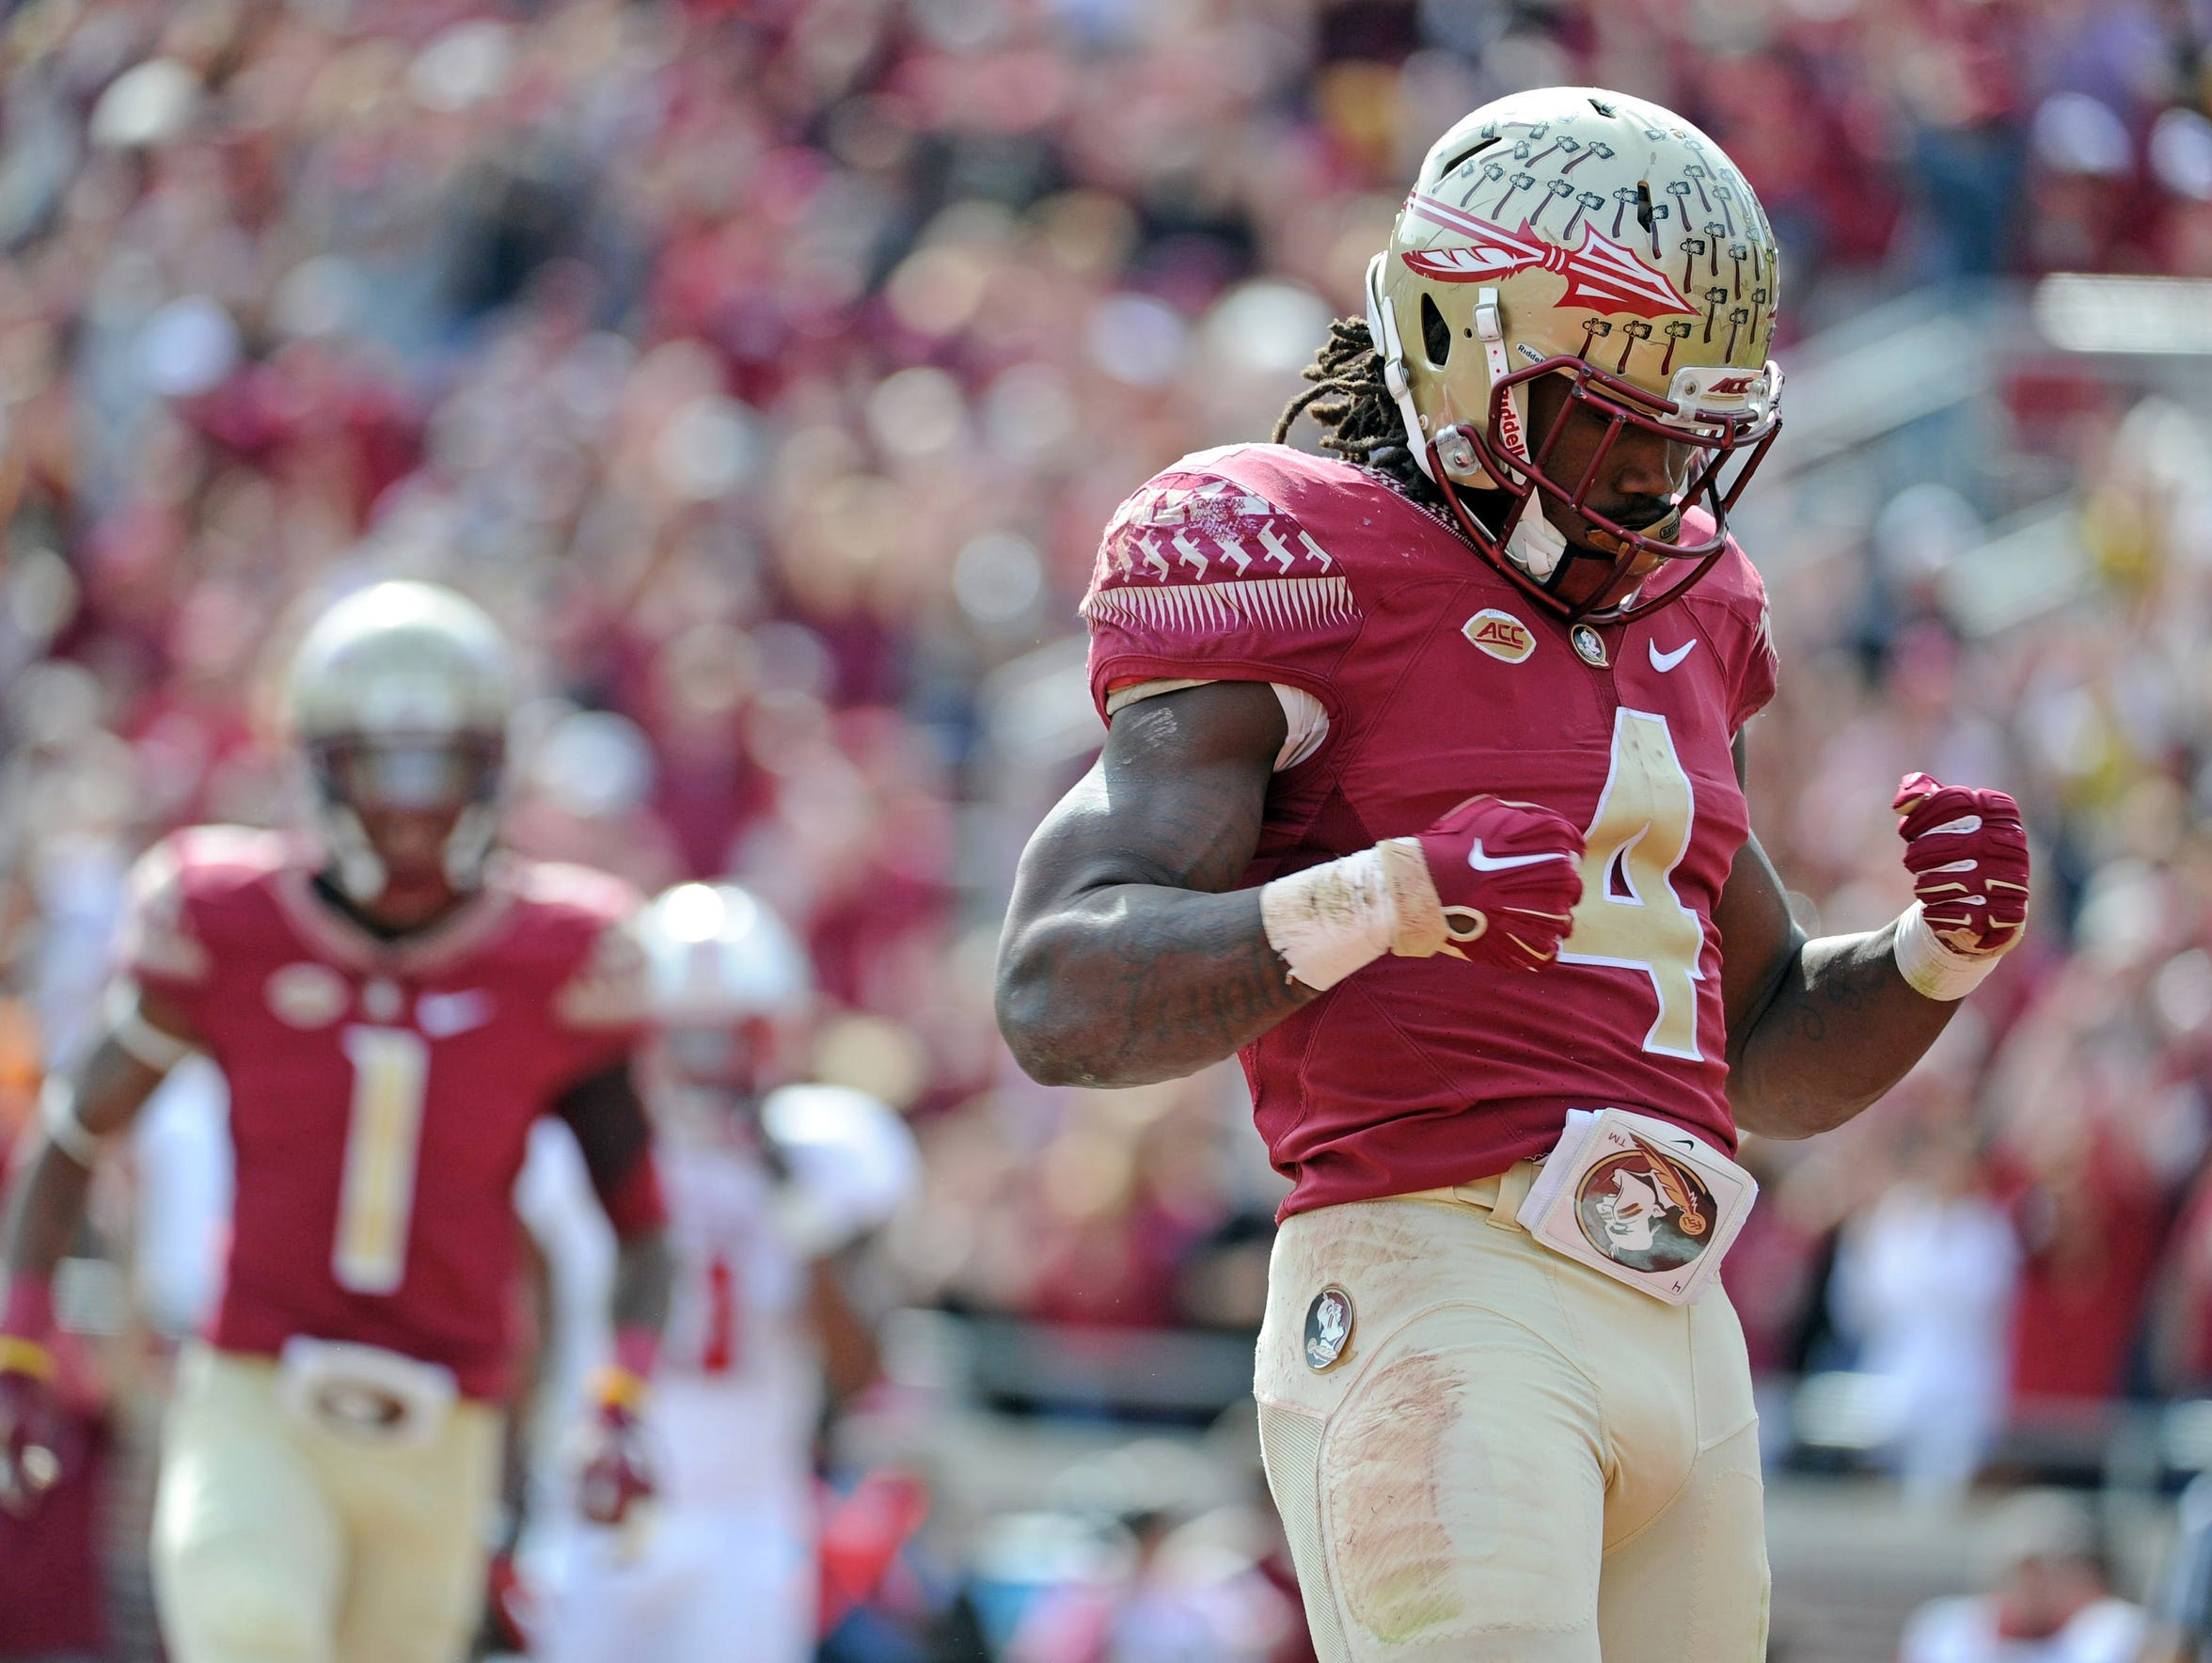 Cook has much more Heisman Trophy buzz coming into